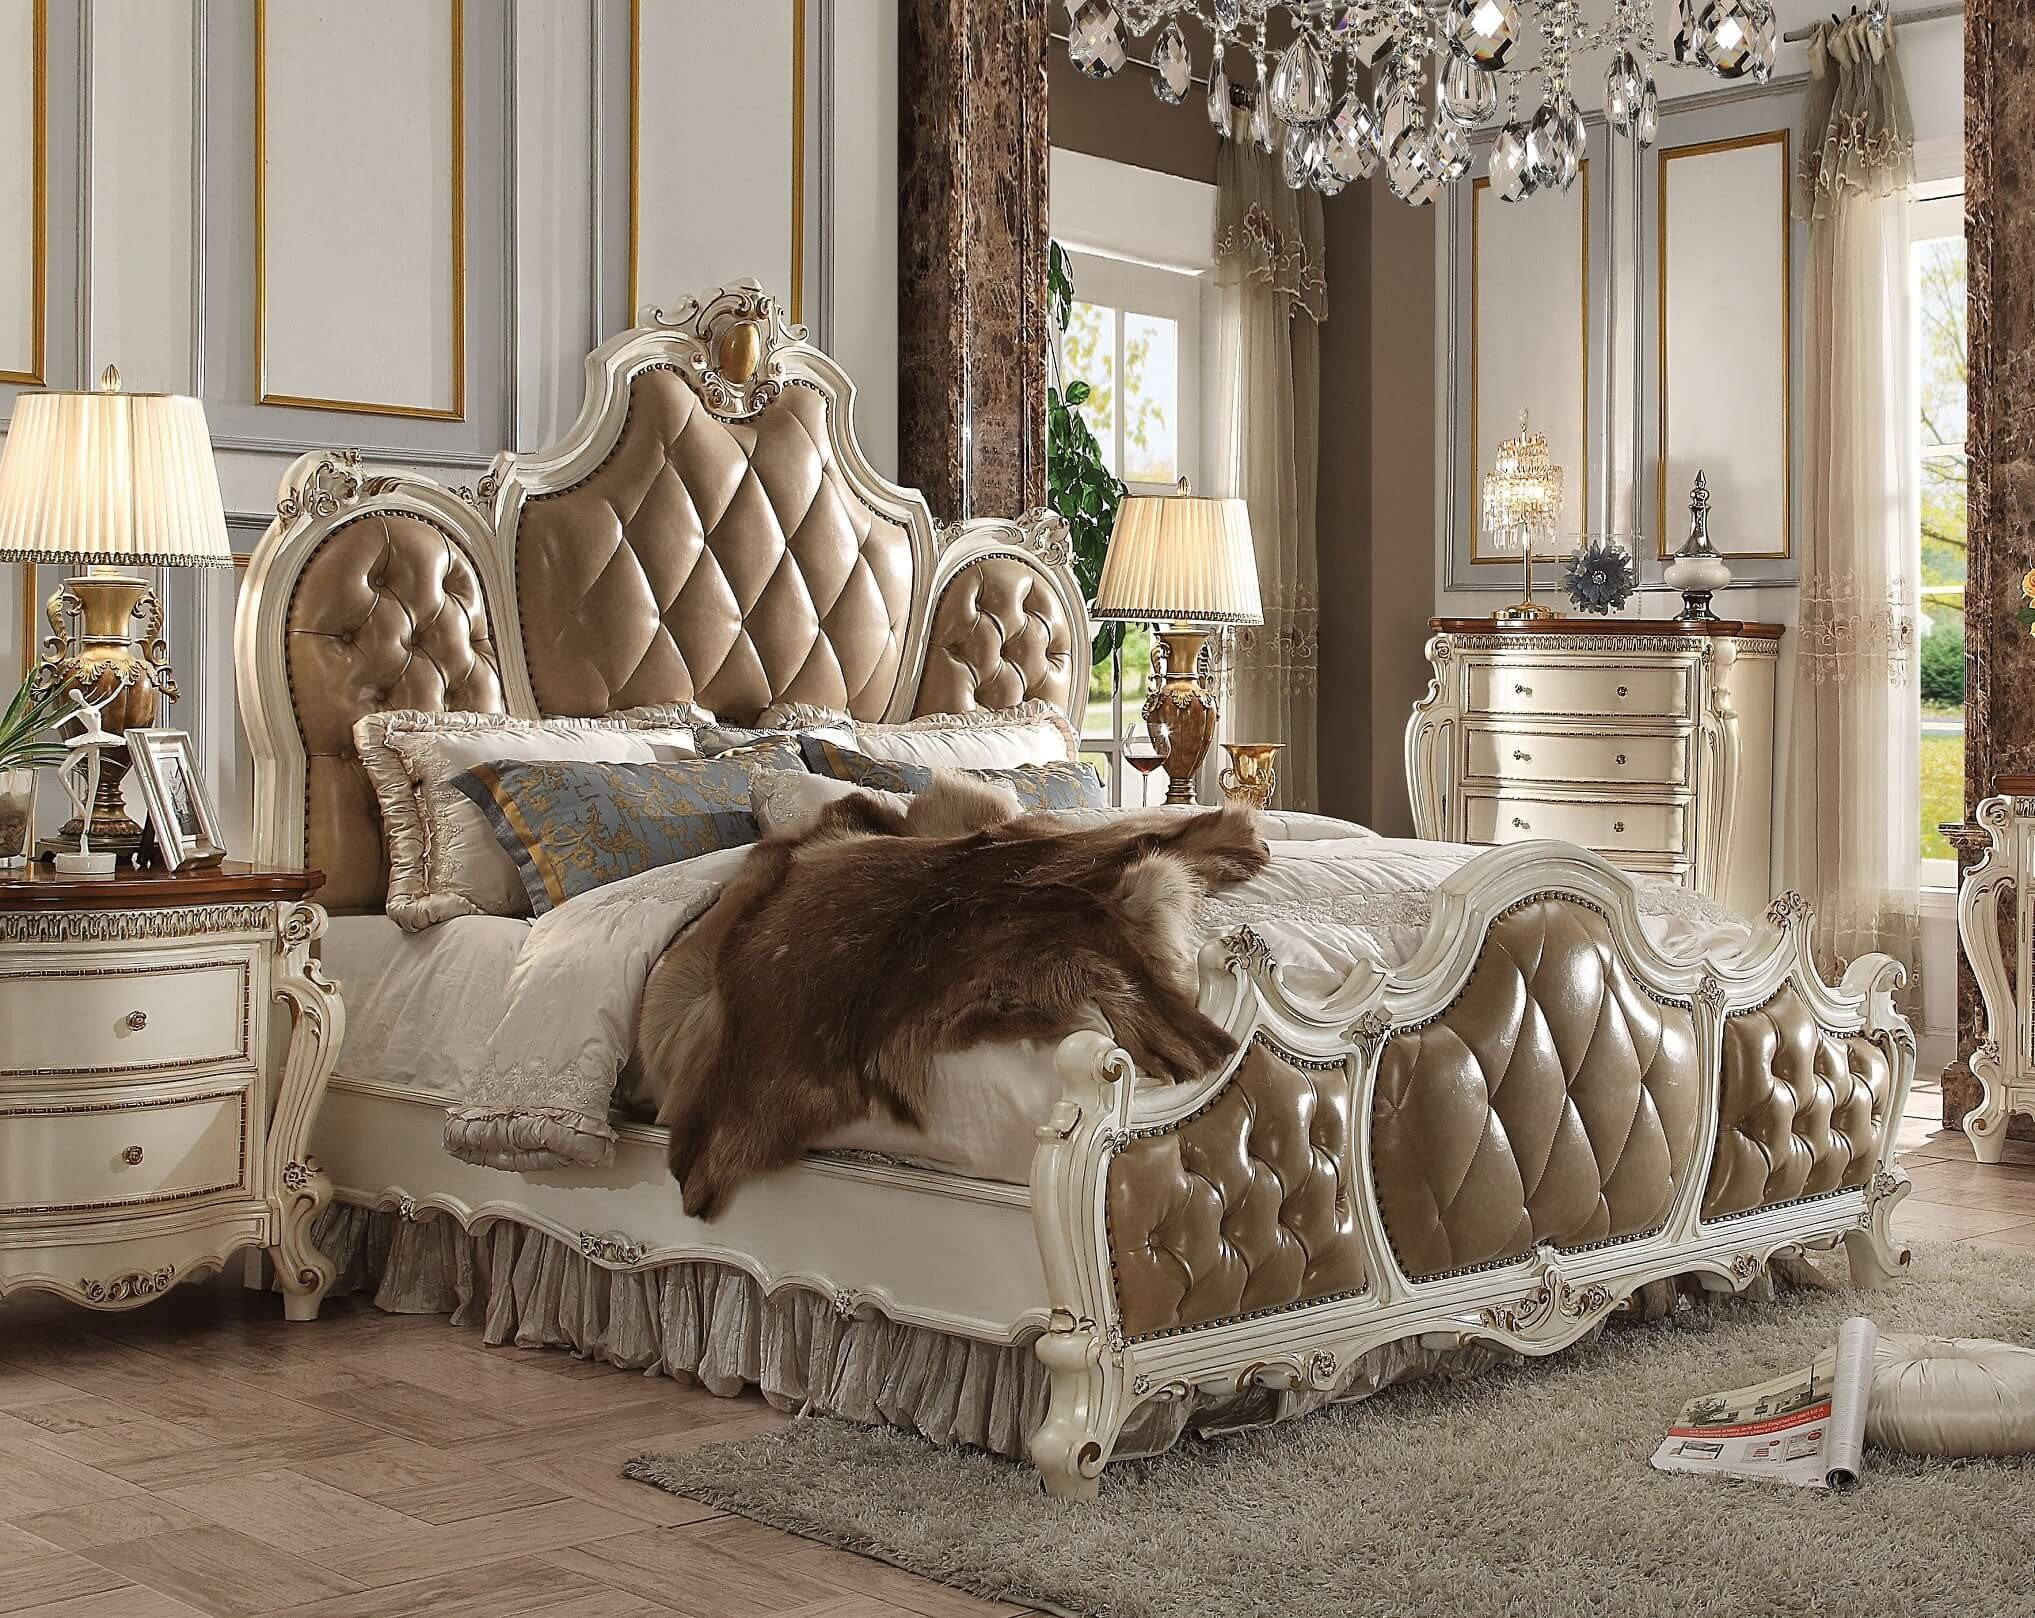 Tufted King Bedroom Set Fresh Picardy Leather Upholstered Bed Acme Q